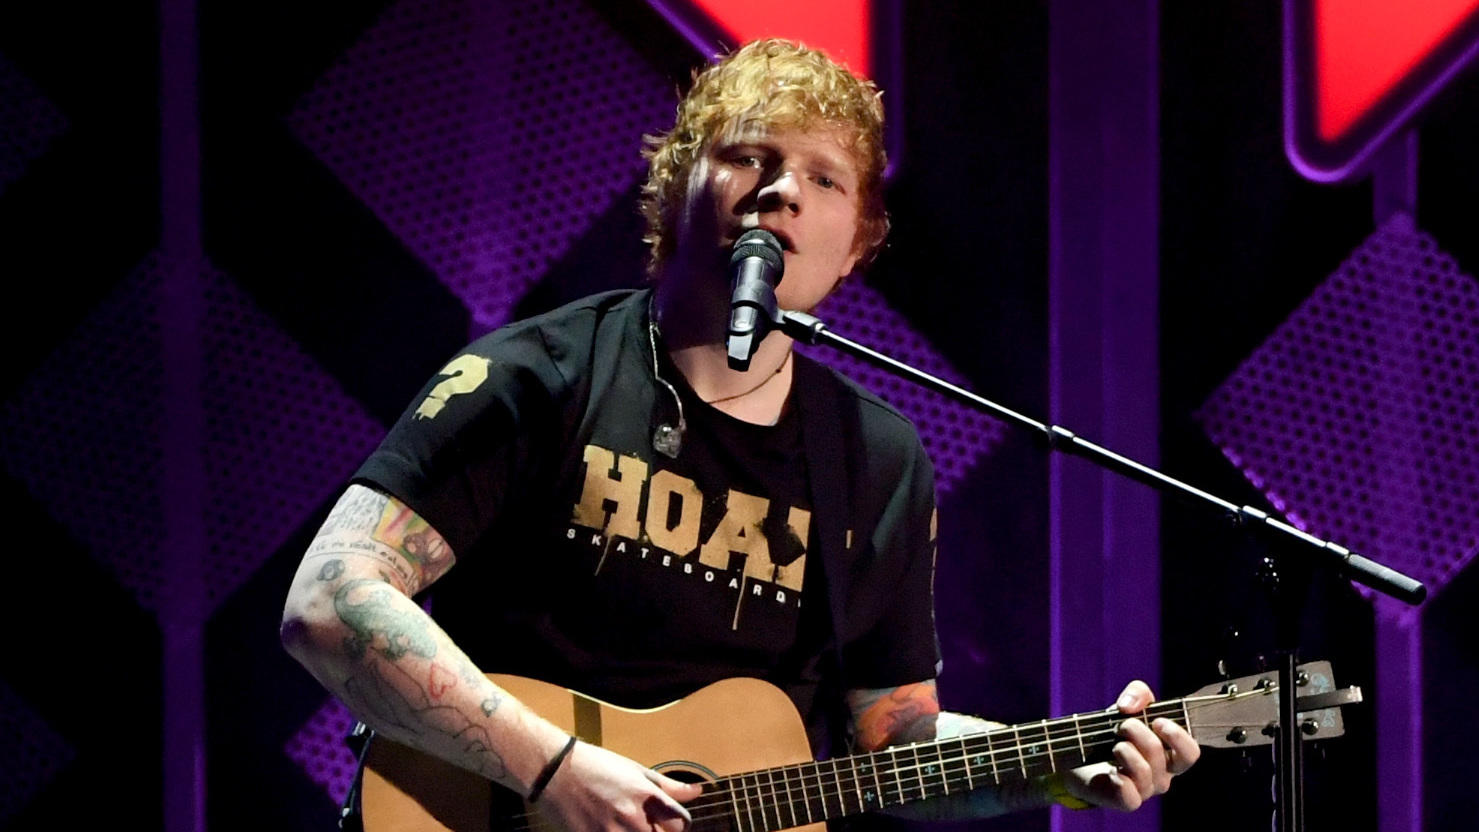 Ed Sheeran named Spotify's most streamed artist of the year